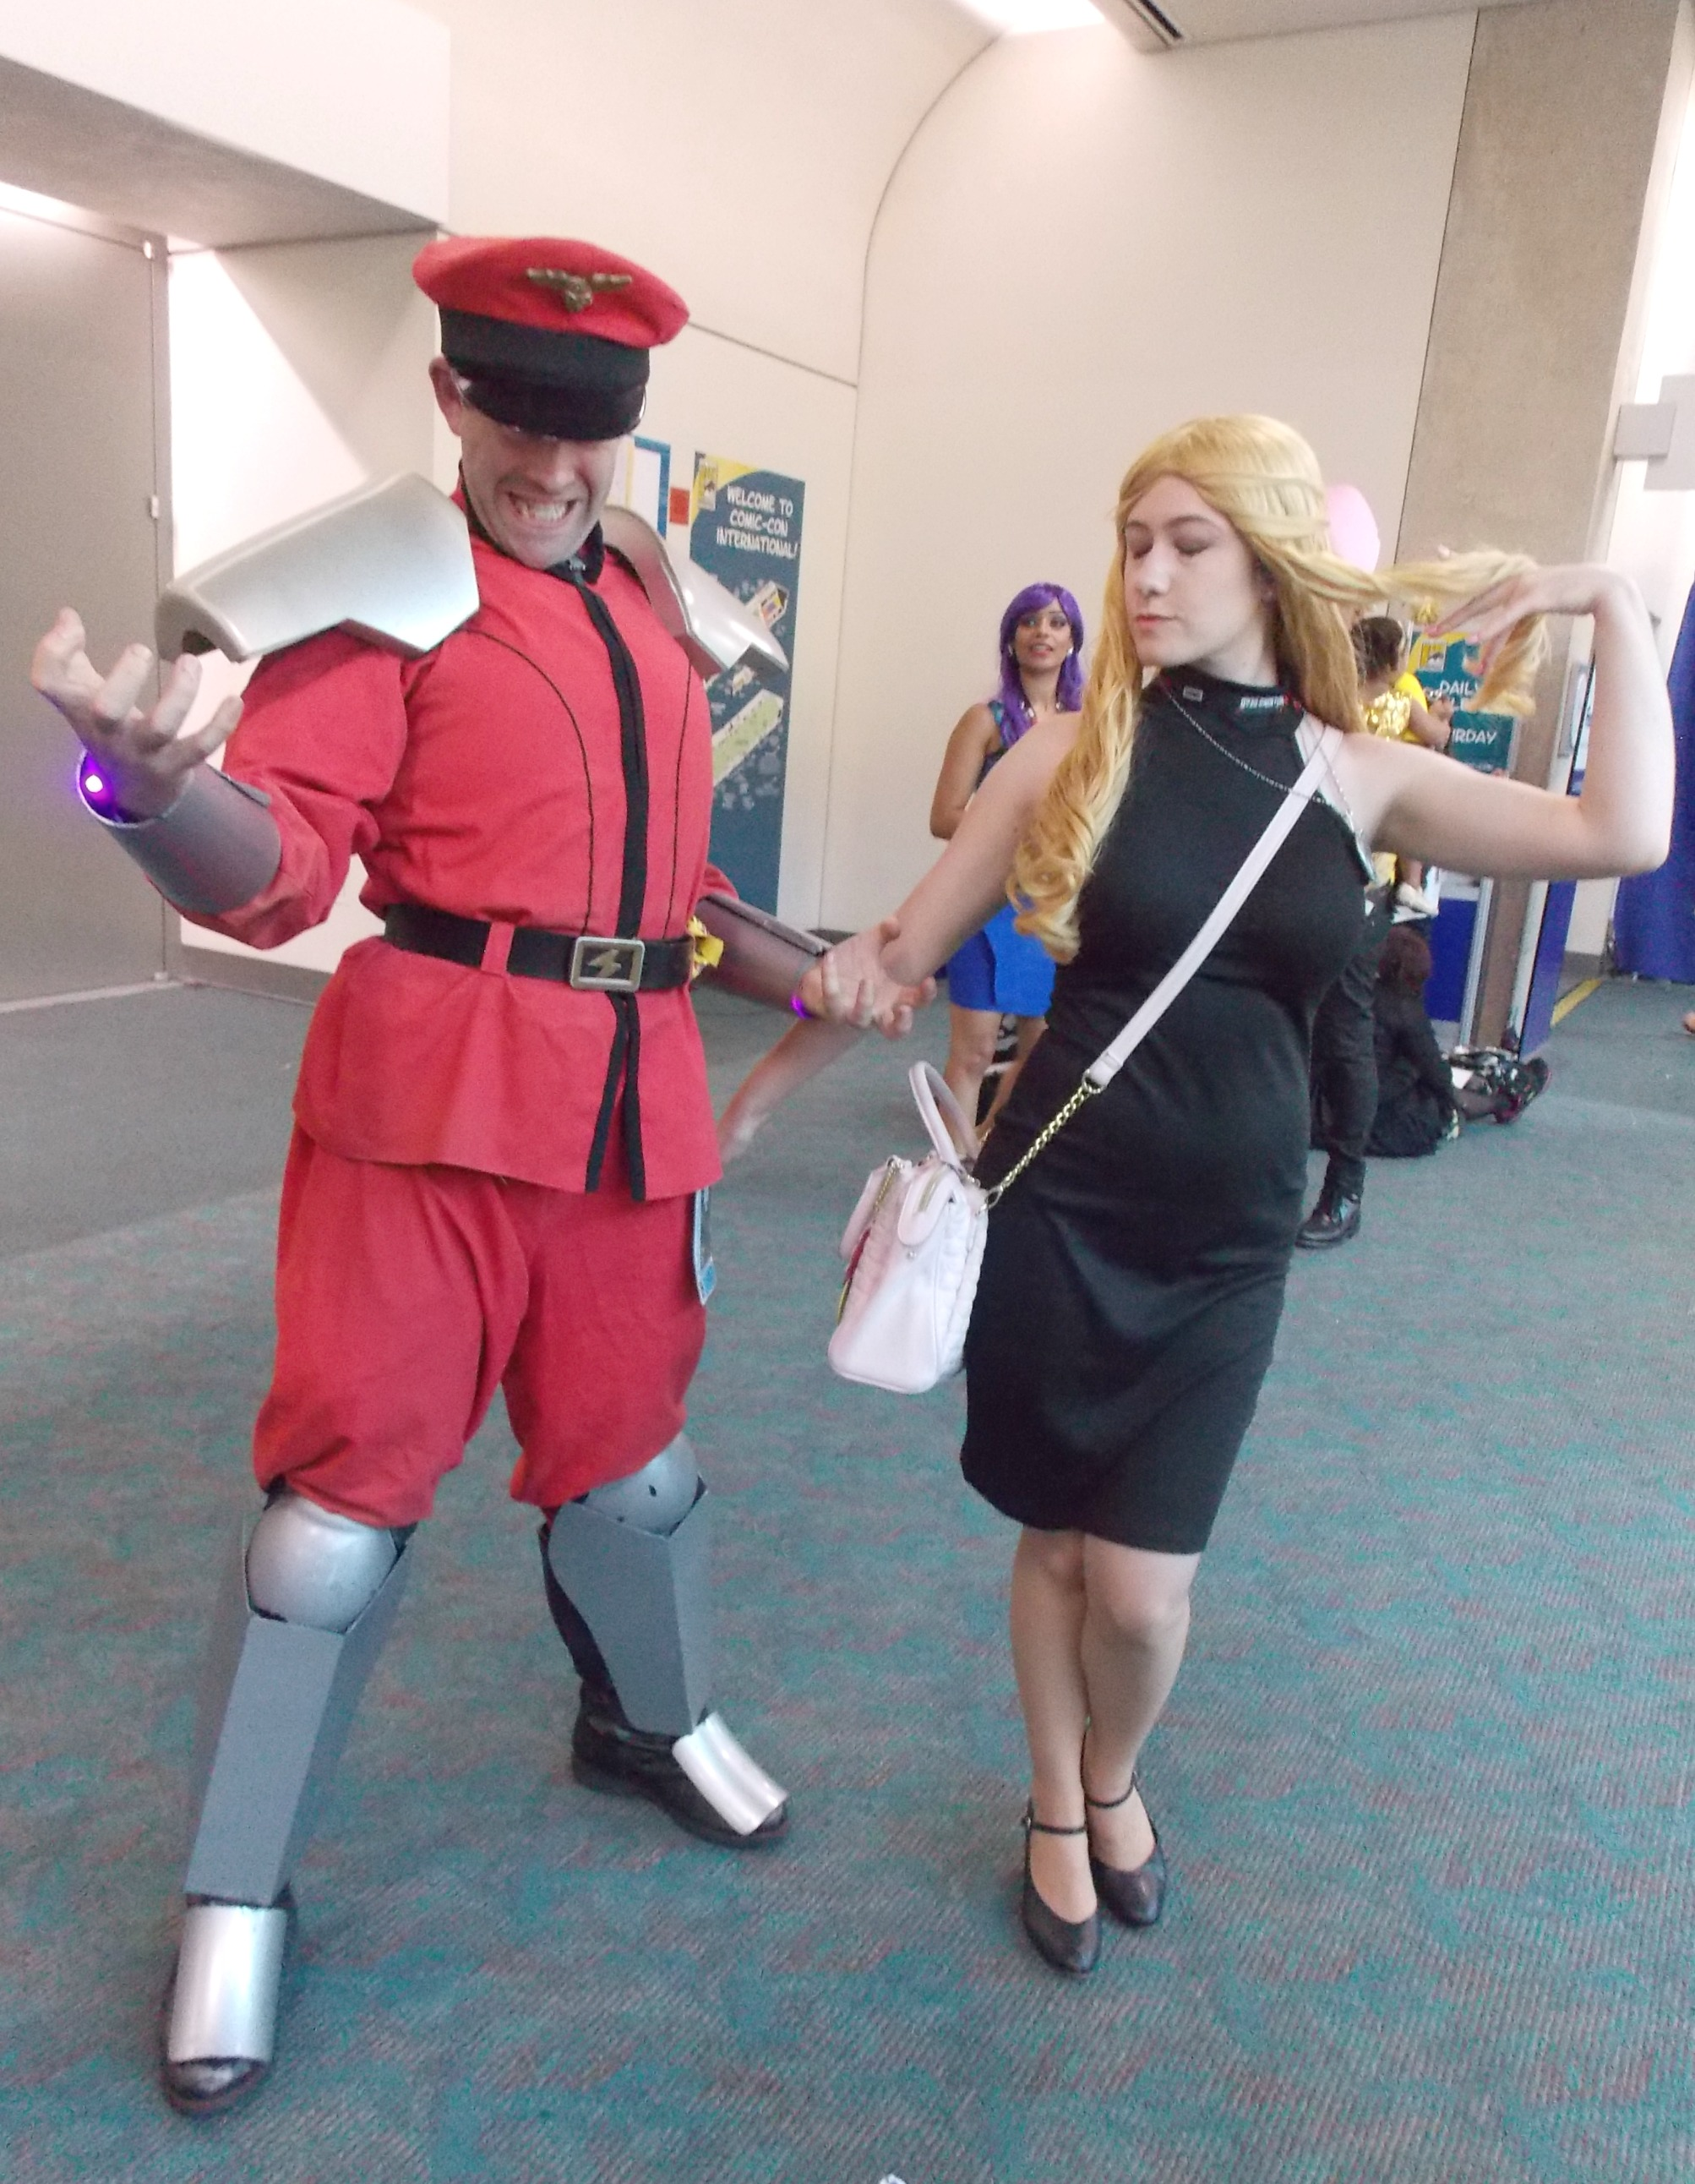 M. Bison and Karin